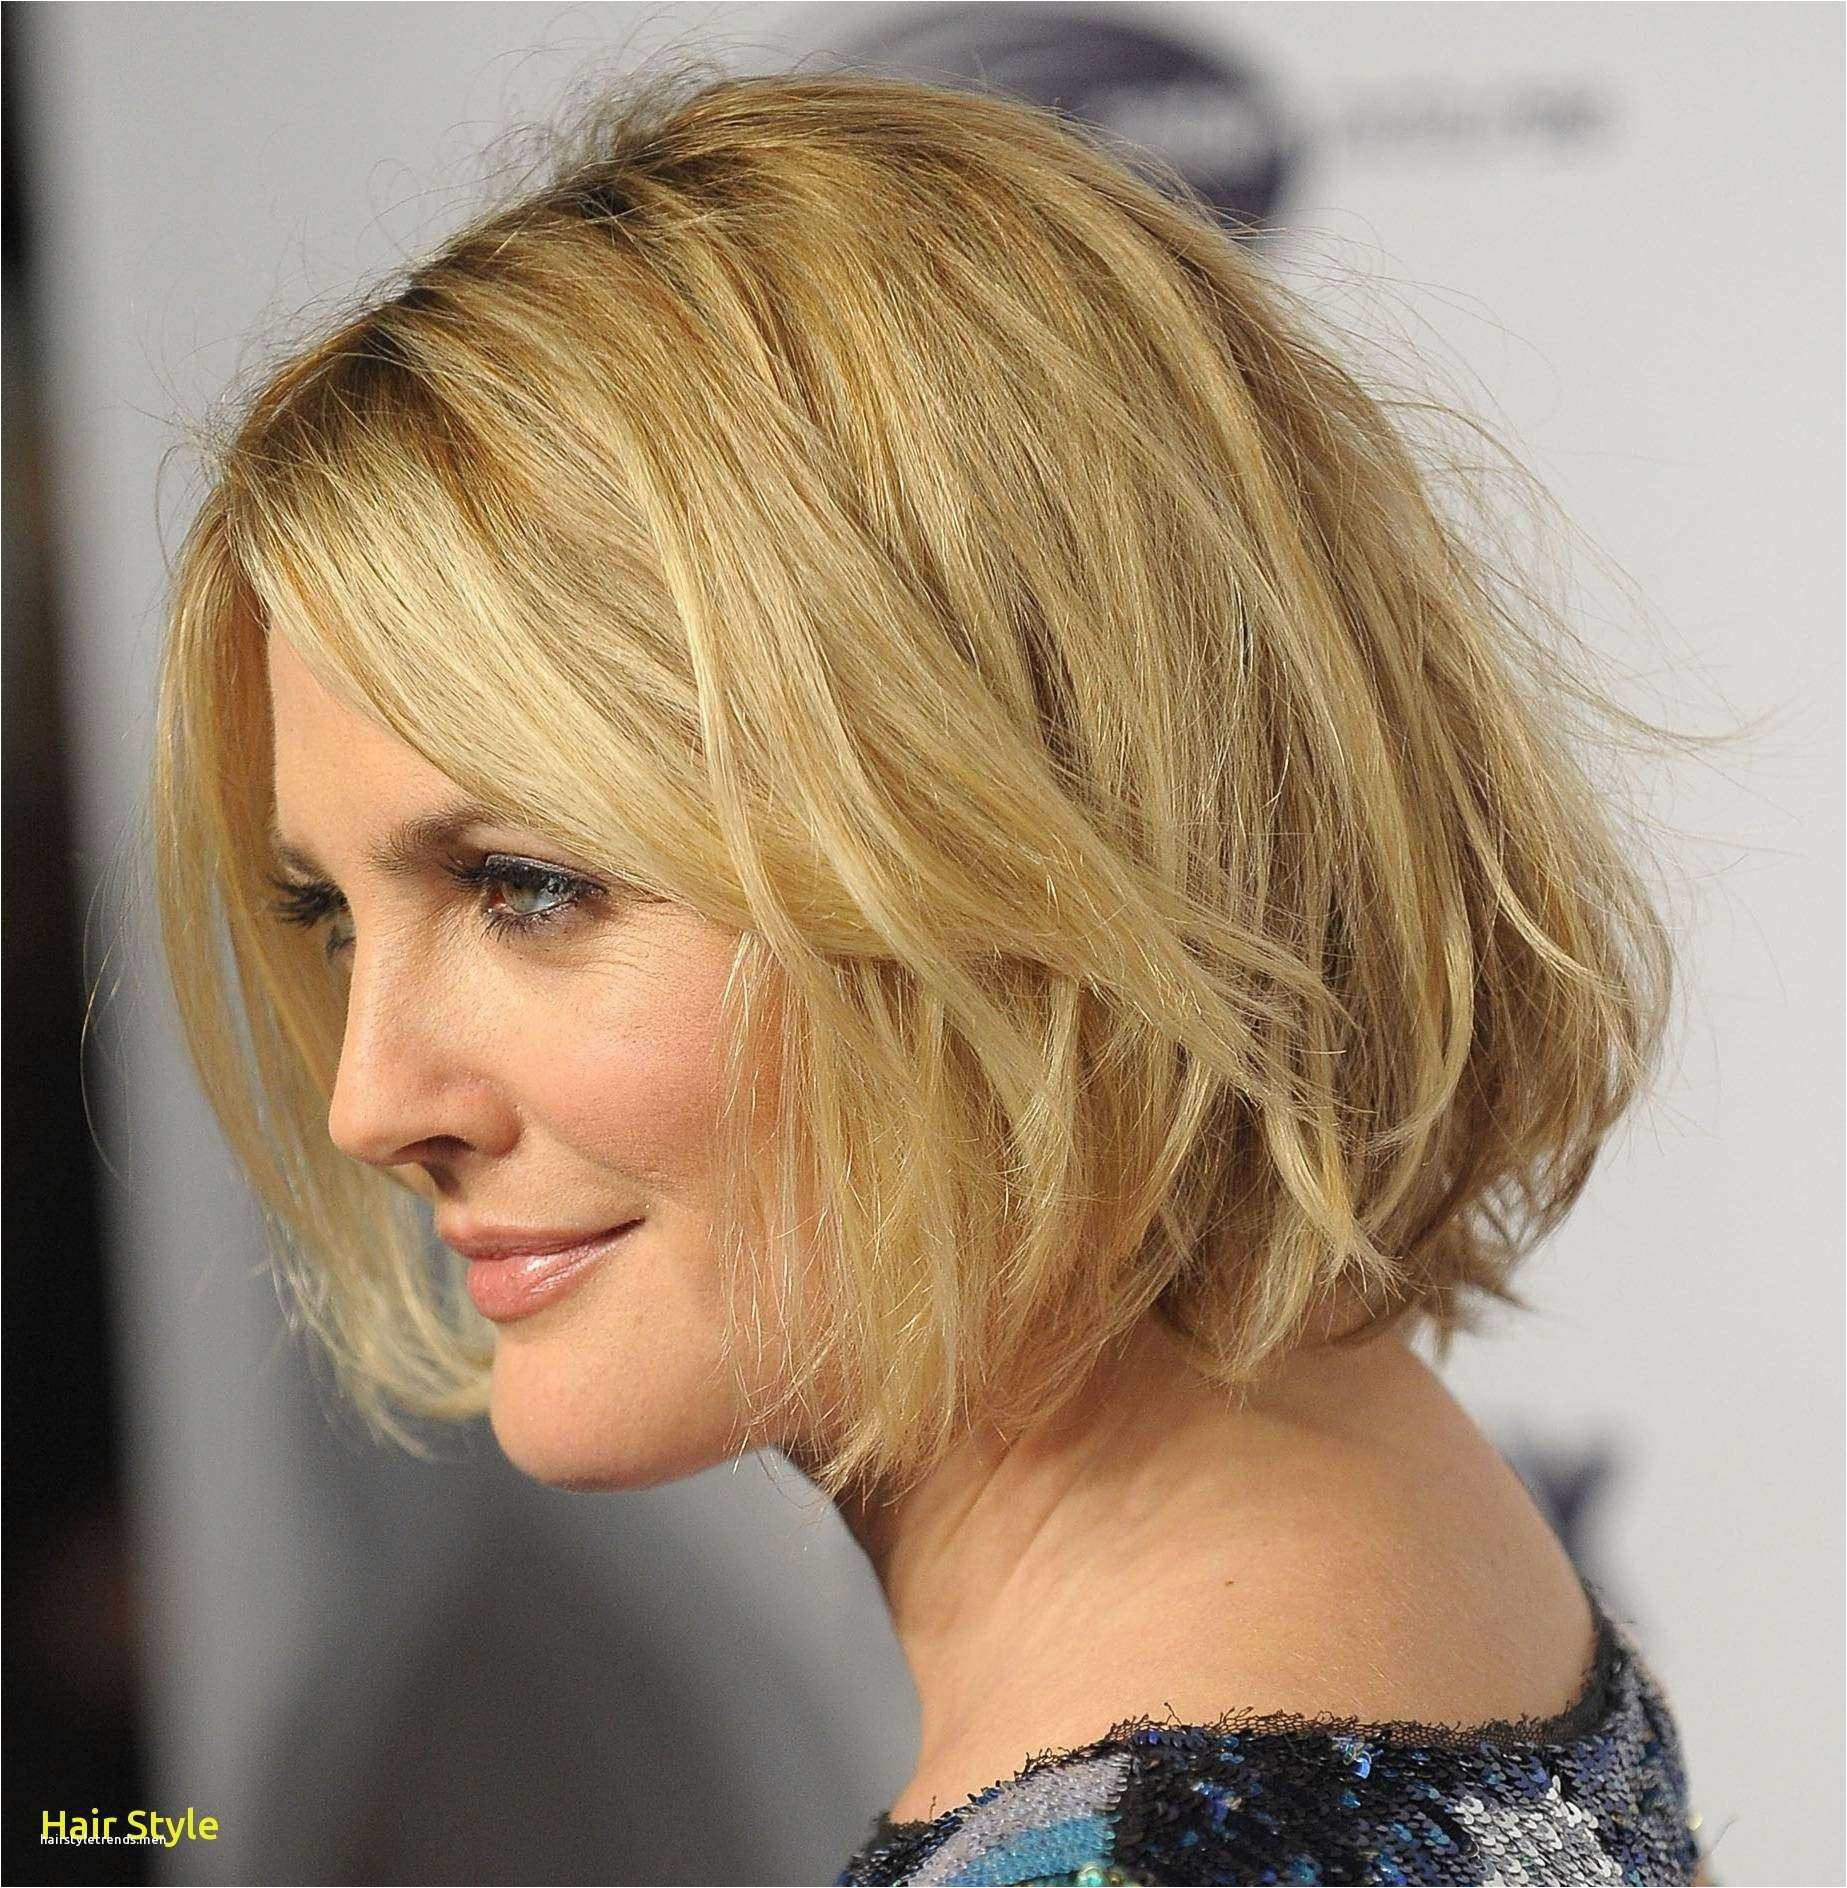 Best of layered hair styles elegant medium length bob hairstyles new i pinimg 1200x 0d 60 Best Hairstyles For Oval Faces Over 50